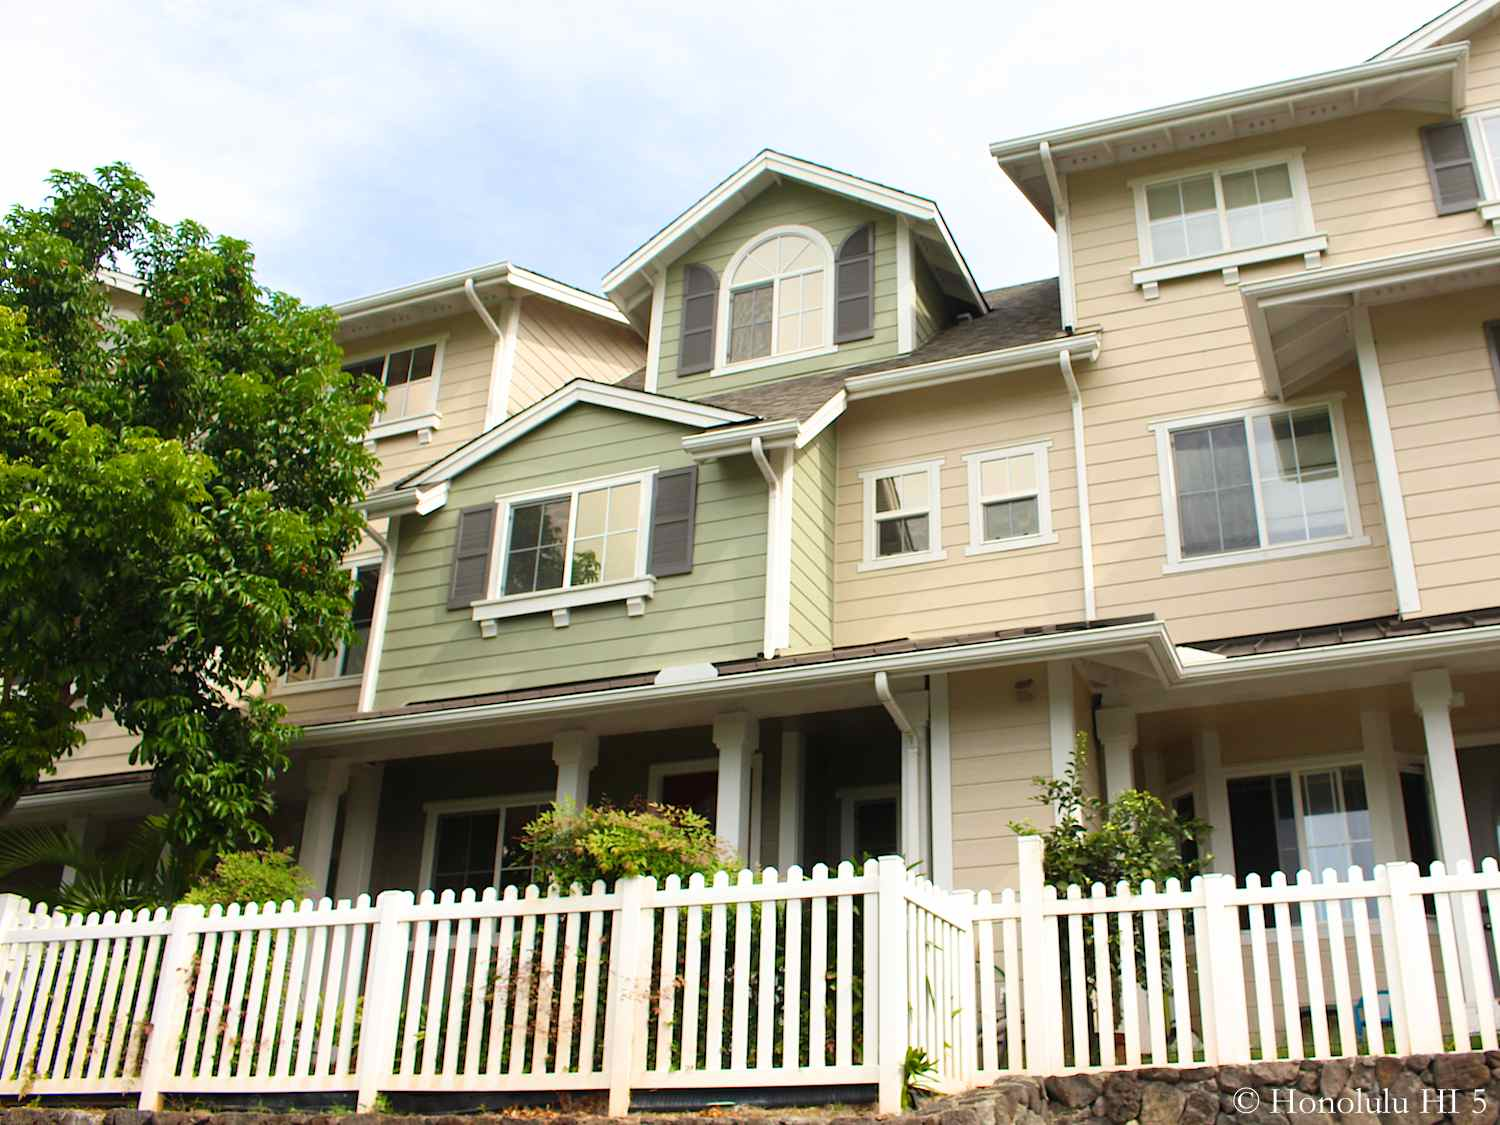 Nanea Kai Hawaii Kai Condos - Low-rise Townhomes with Small Patio